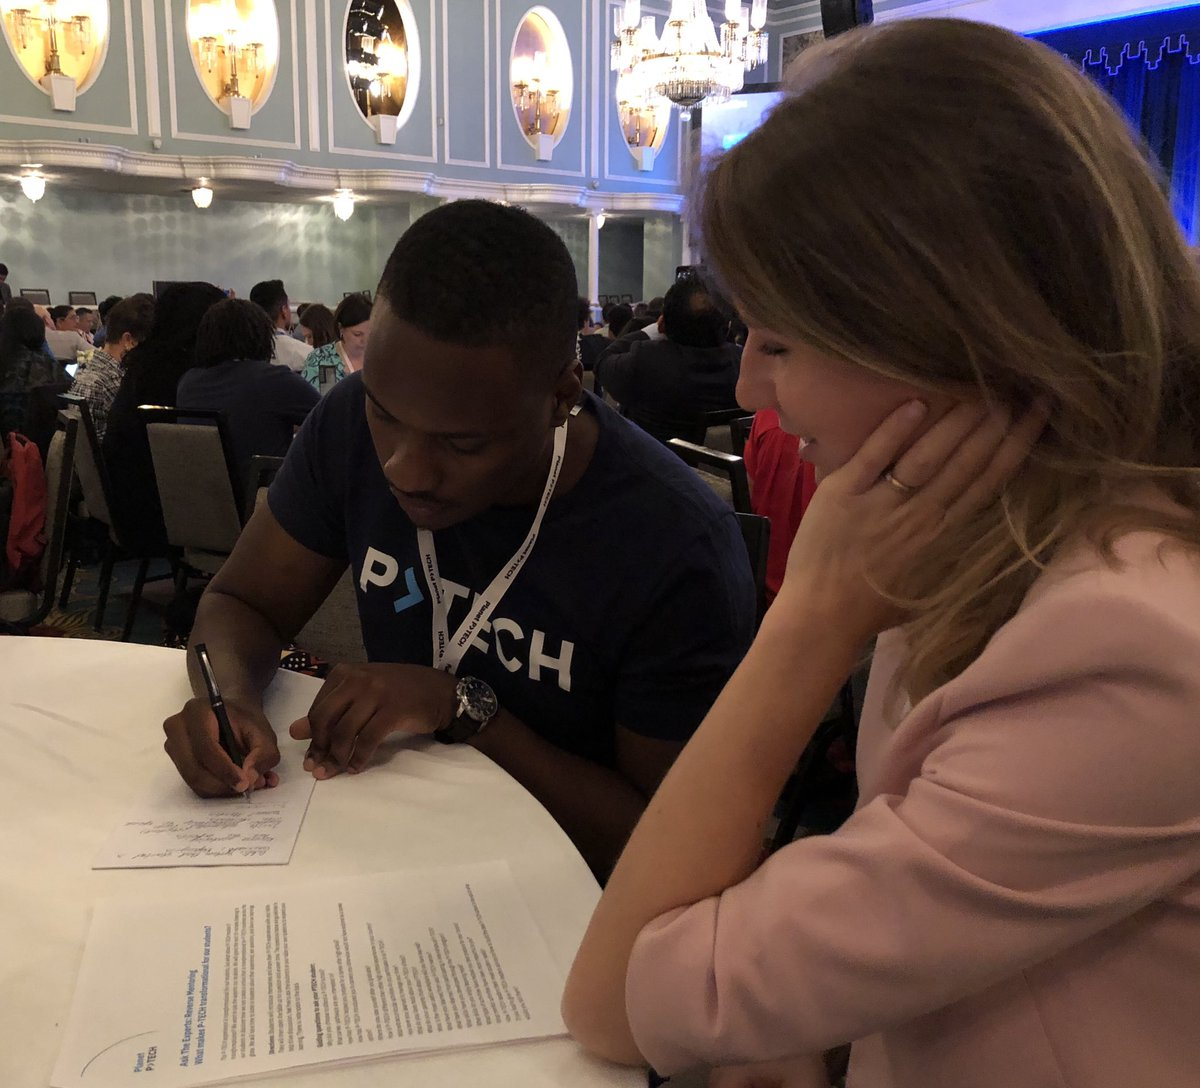 How incredible to have the education leaders learn from the experts — the #students!  THIS is the @PTECHNETWORK! #PlanetPTECH2019 #WednesdayWisdom @IBMorg #WeArePTECH #reversementoring #childrenareourfuture<br>http://pic.twitter.com/HjxWoQLvYx